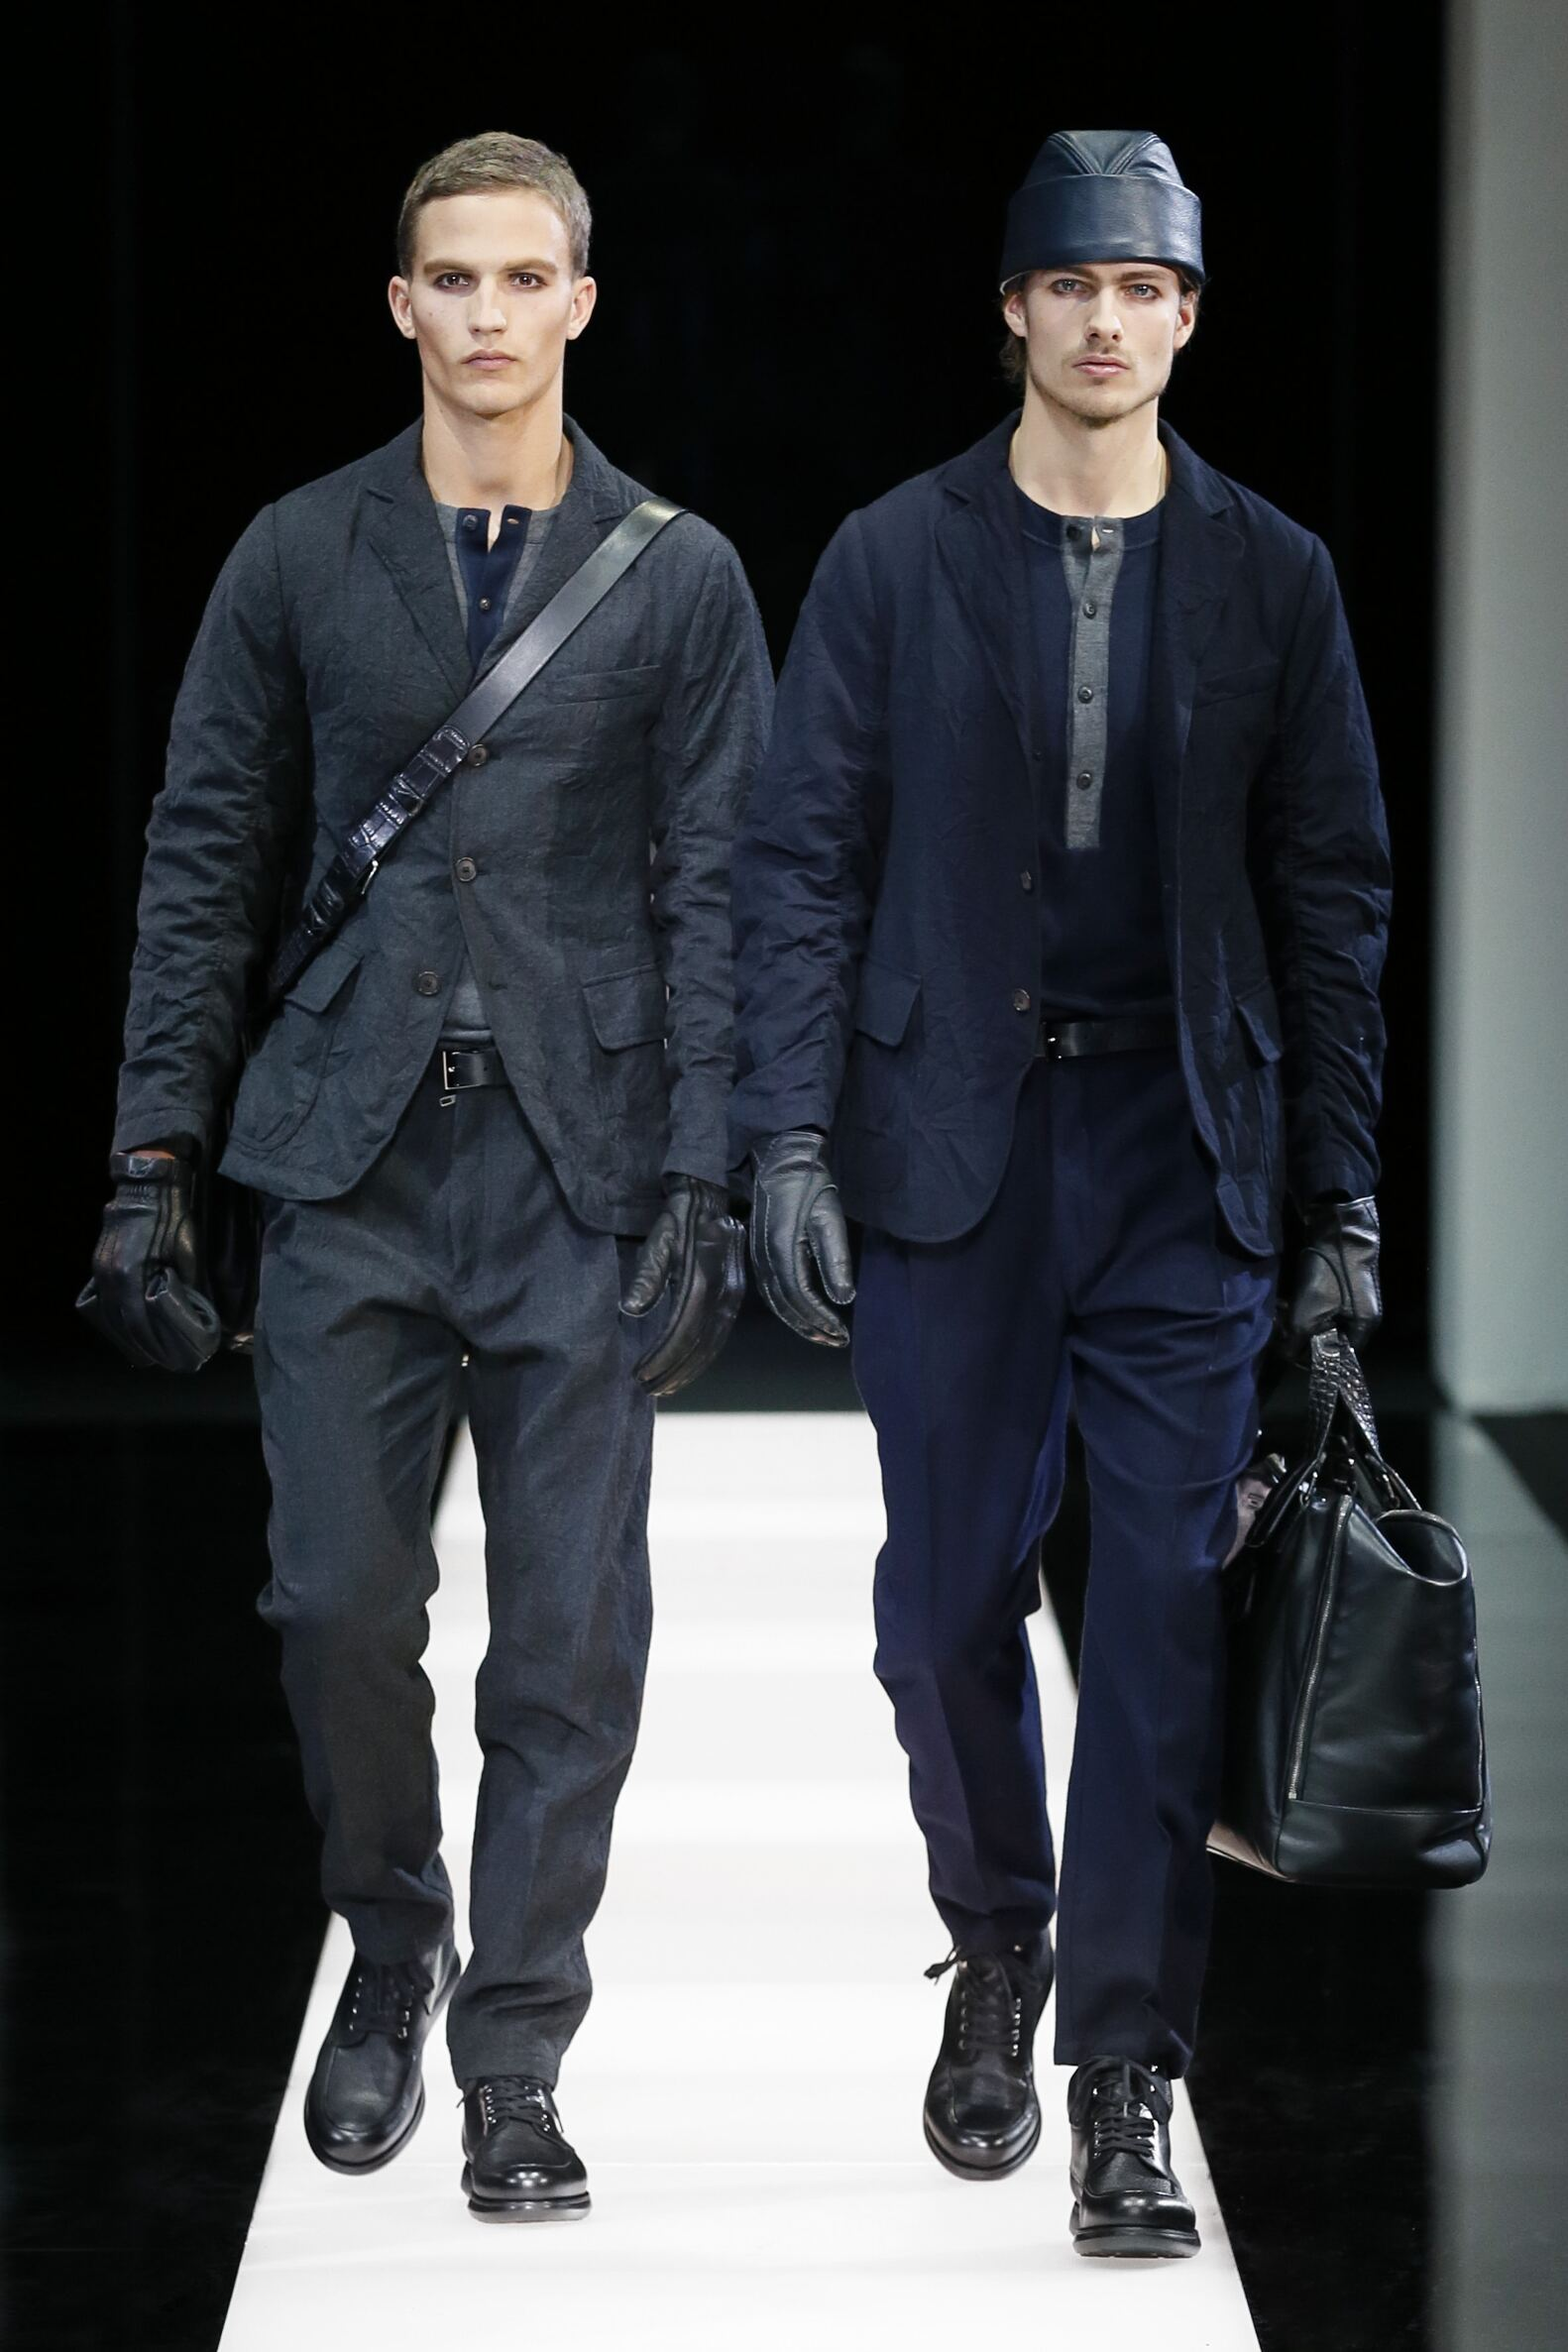 Catwalk Giorgio Armani Fall Winter 2015 16 Men's Collection Milano Fashion Week